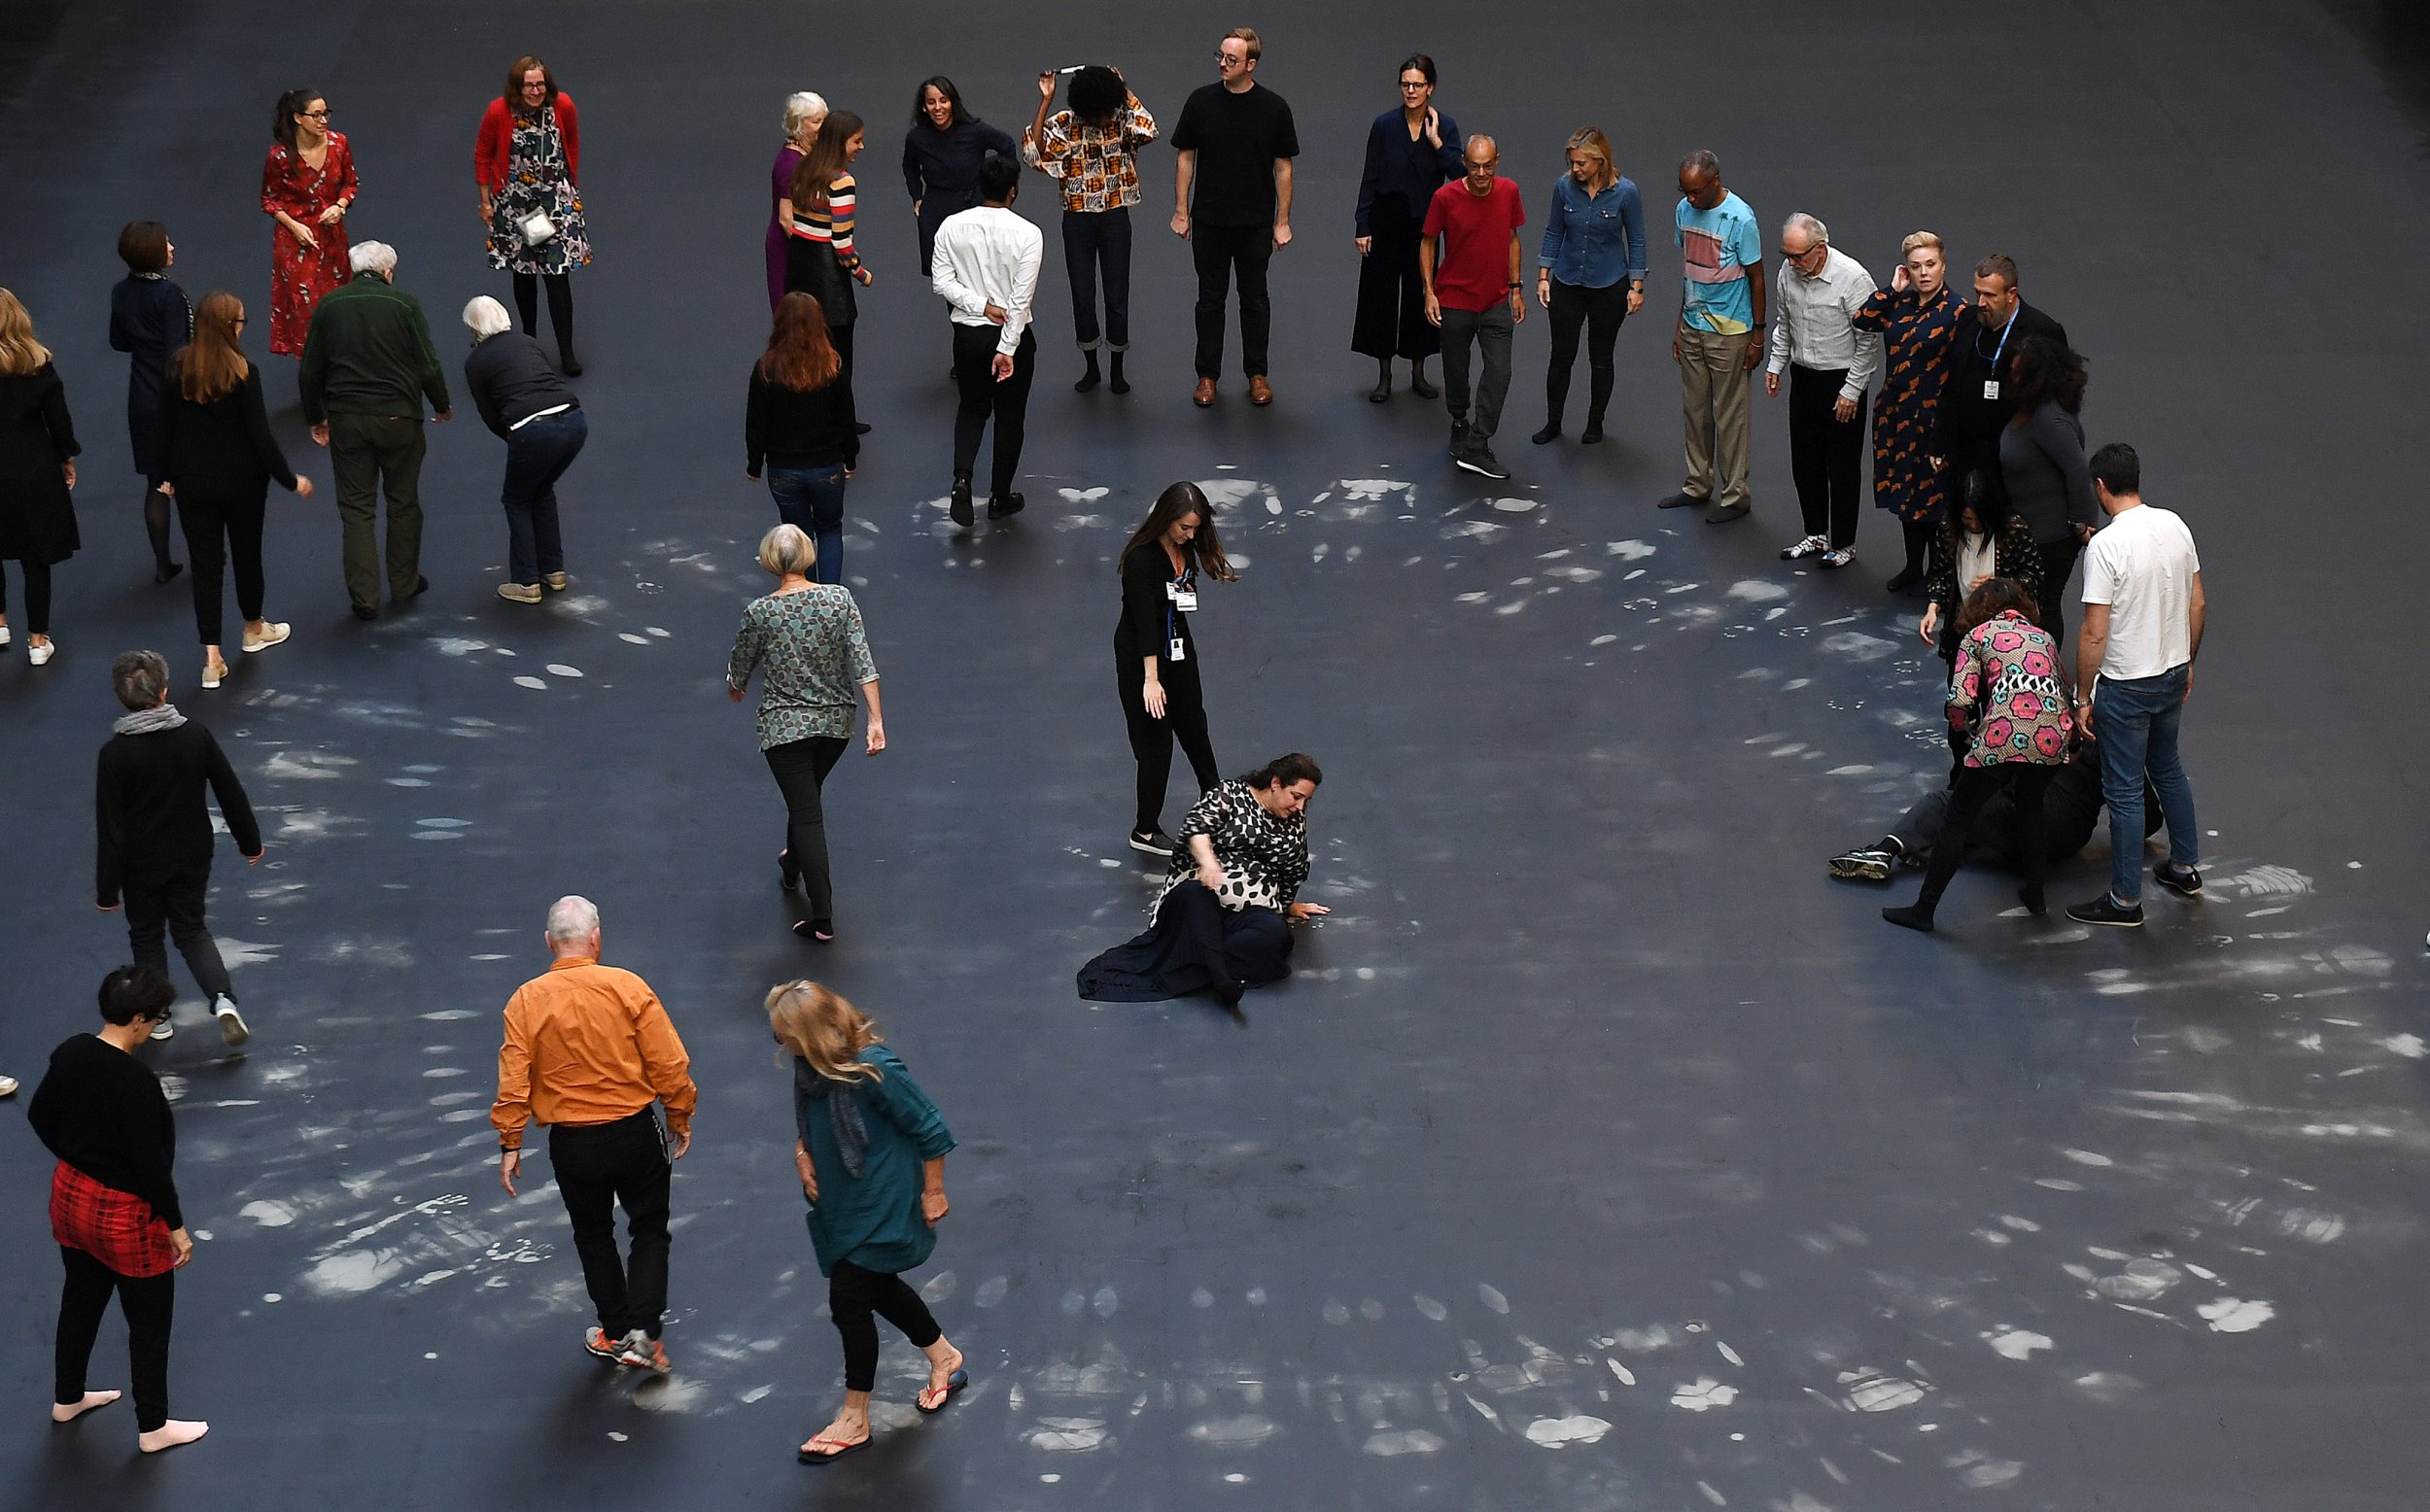 epa07061103 Cuban artist and activist Tania Bruguera (C) stands with volunteers on her installation during its unveiling in the Turbine Hall at Tate Modern in London, Britain, 01 October 2018. The art project created in response to the global migration crisis as part of the annual Hyundai Commission will be on show from 02 October 2018 to 24 February 2019. The installation 'invites visitors to take part in symbolic actions by revealing a hidden image beneath a heat-sensitive floor'. EPA/ANDY RAIN